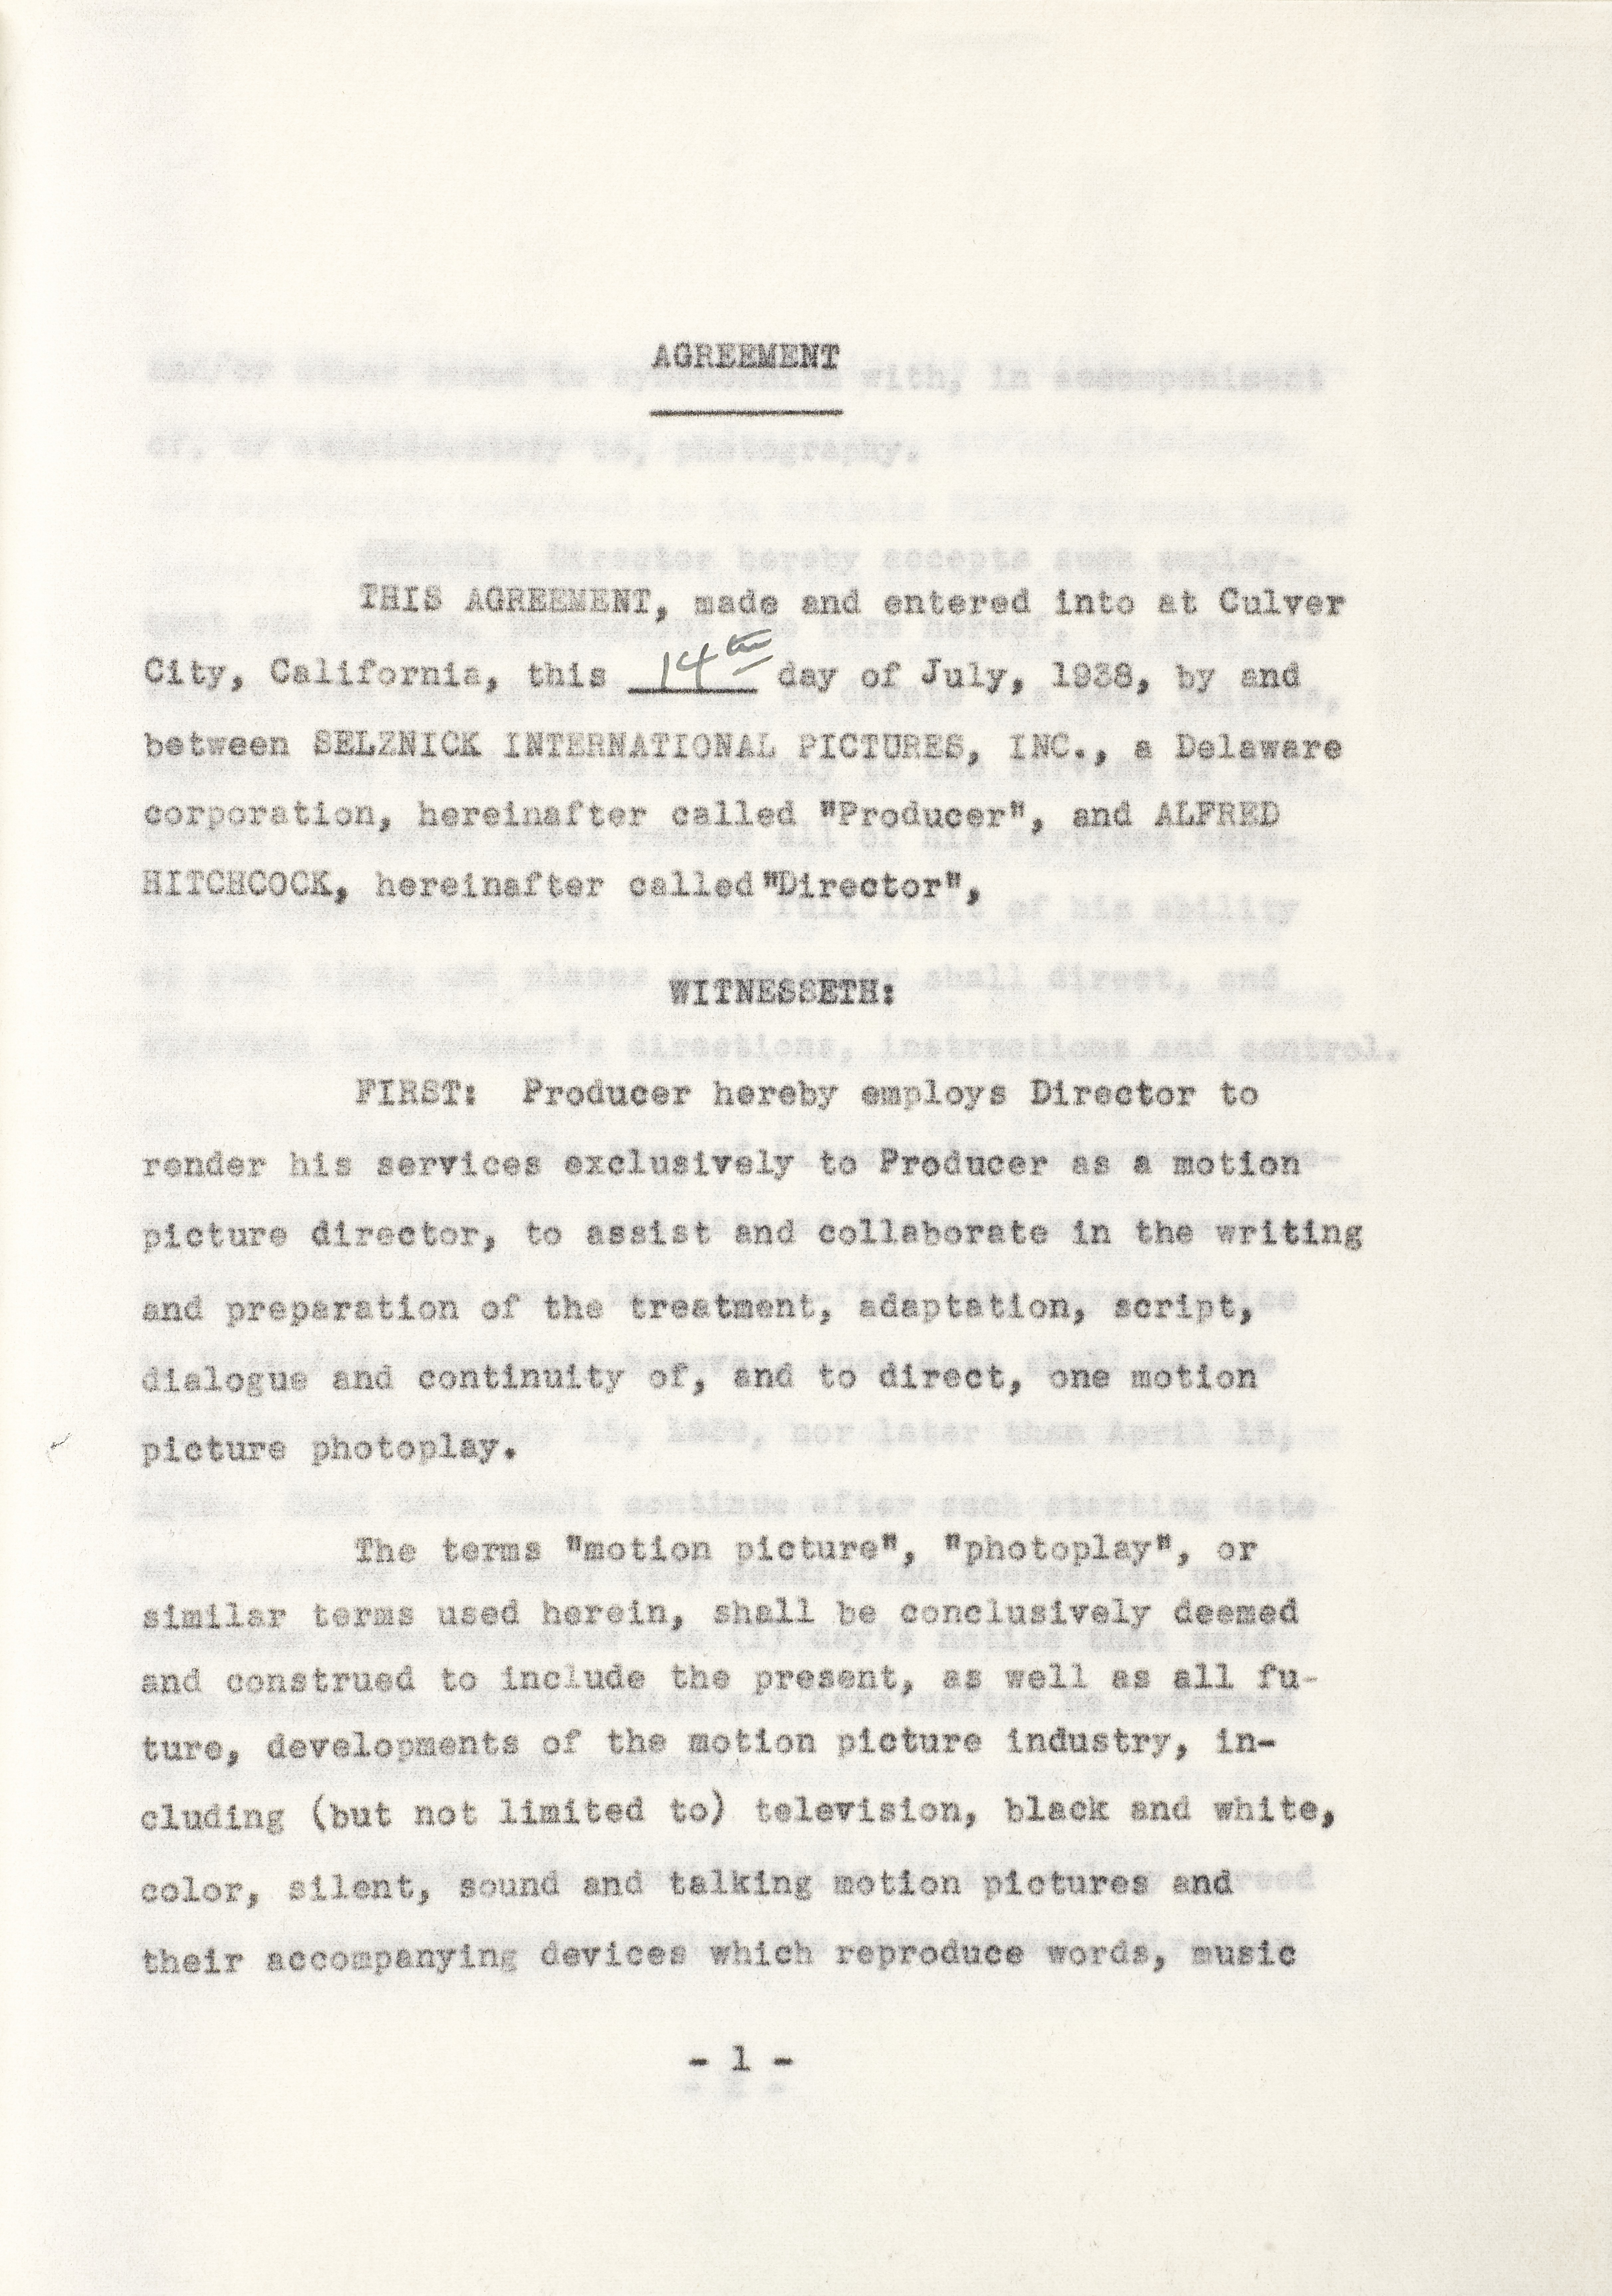 An Alfred Hitchcock first American contract - Image 2 of 2